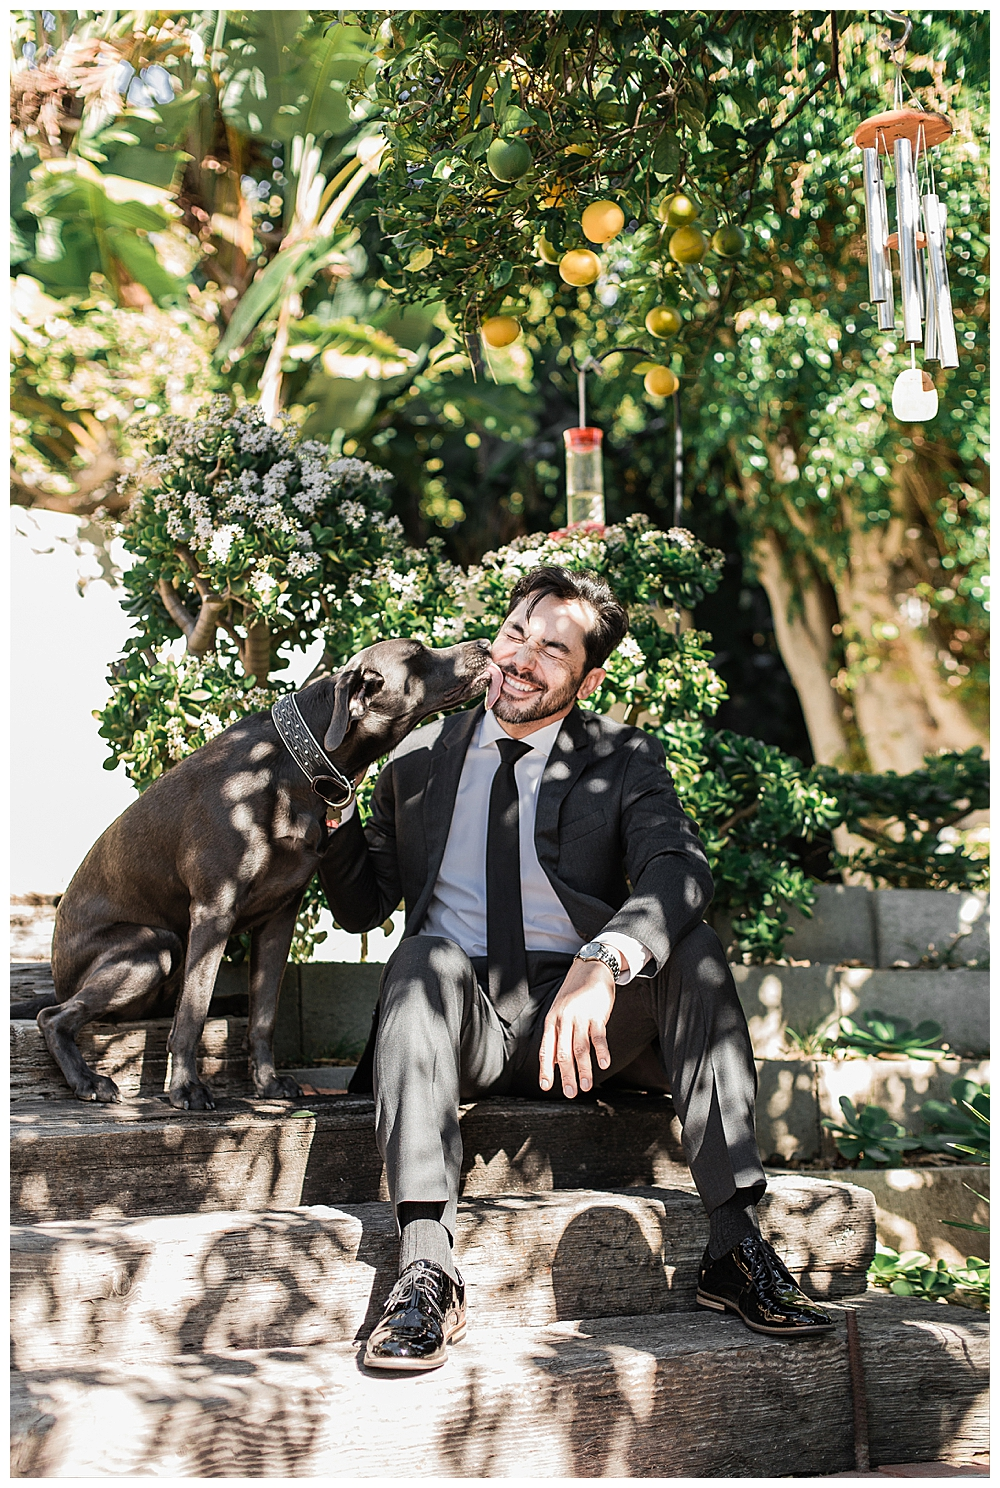 groom-and-his-dog-wedding-day-photography